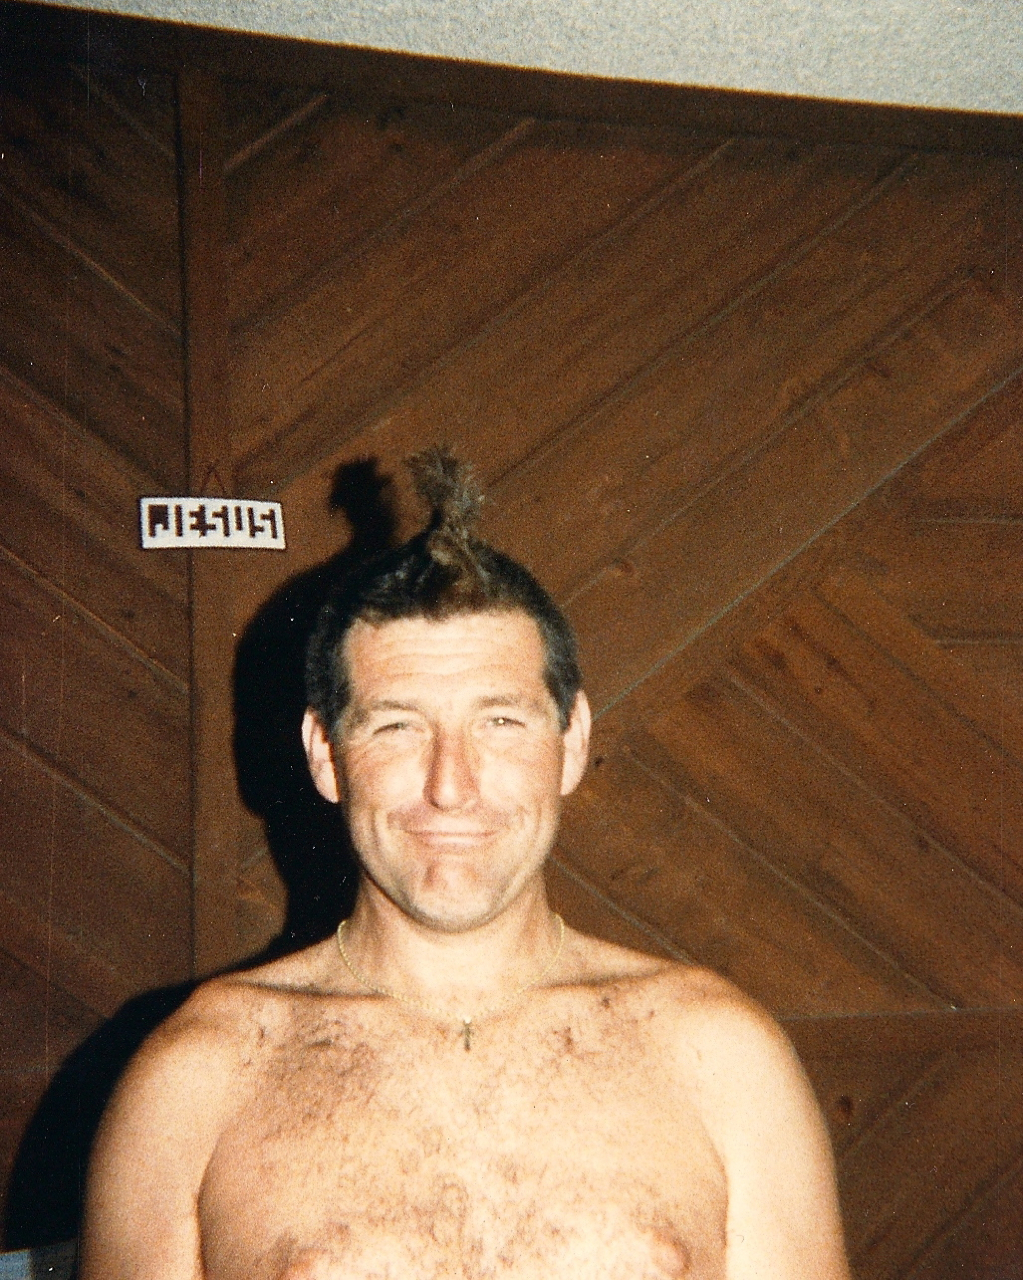 We were inspired by my dad, who surprised us - as he often did - with an unusual do.